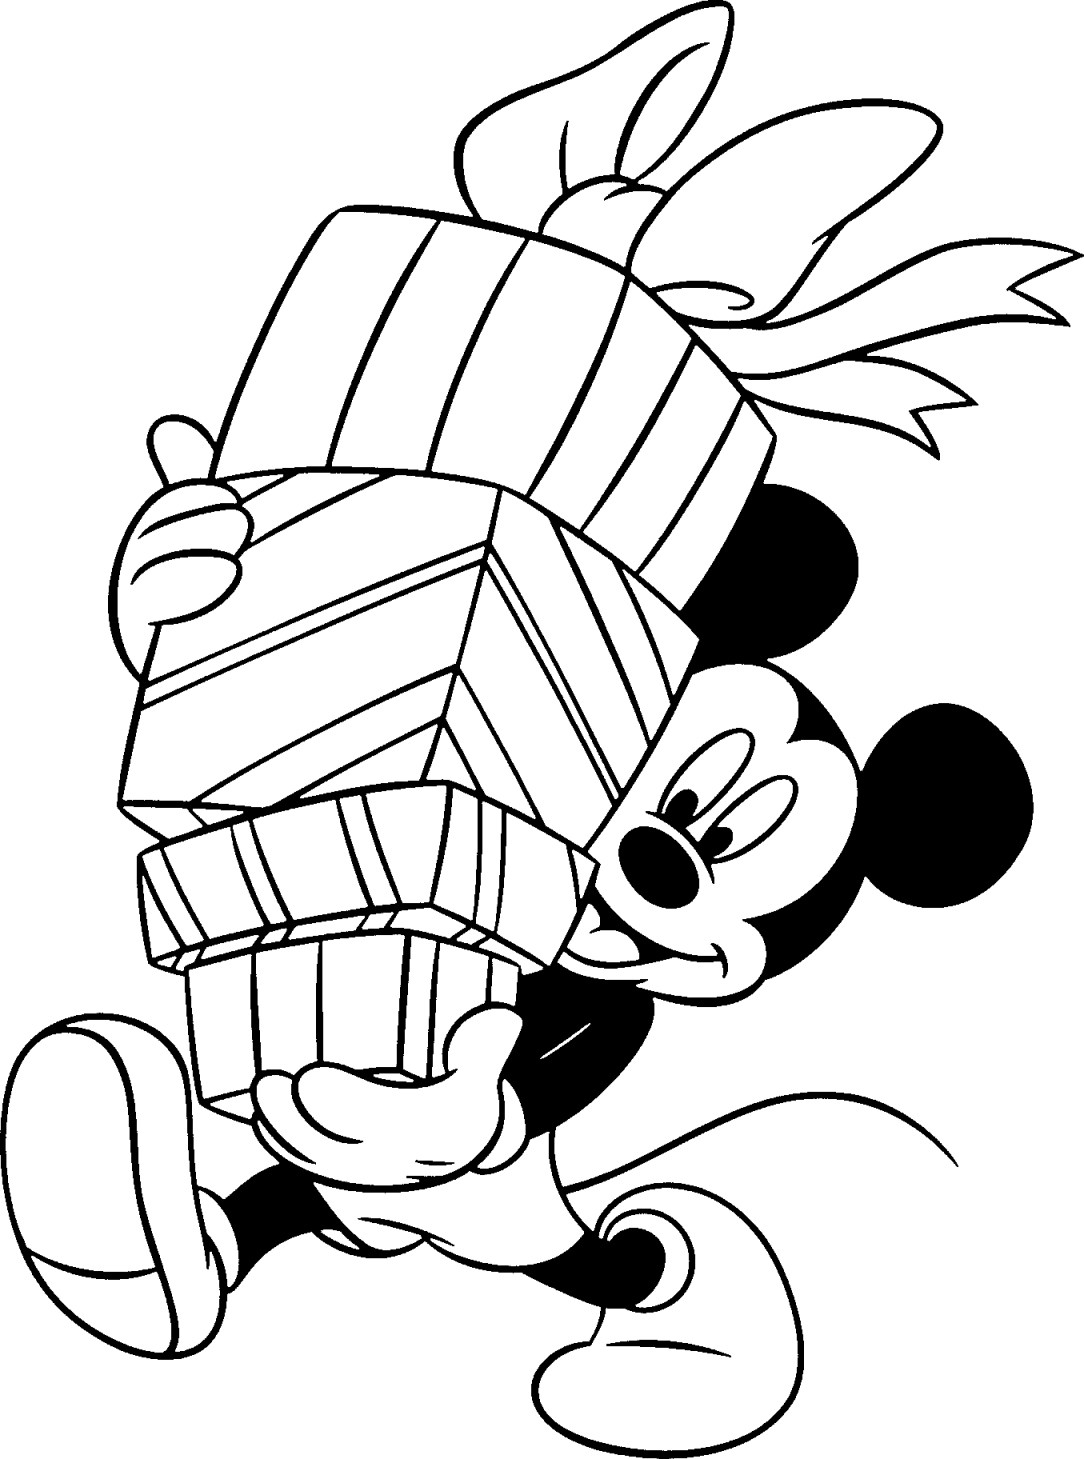 Free Disney Christmas Printable Coloring Pages For Kids Coloring Pages From Disney